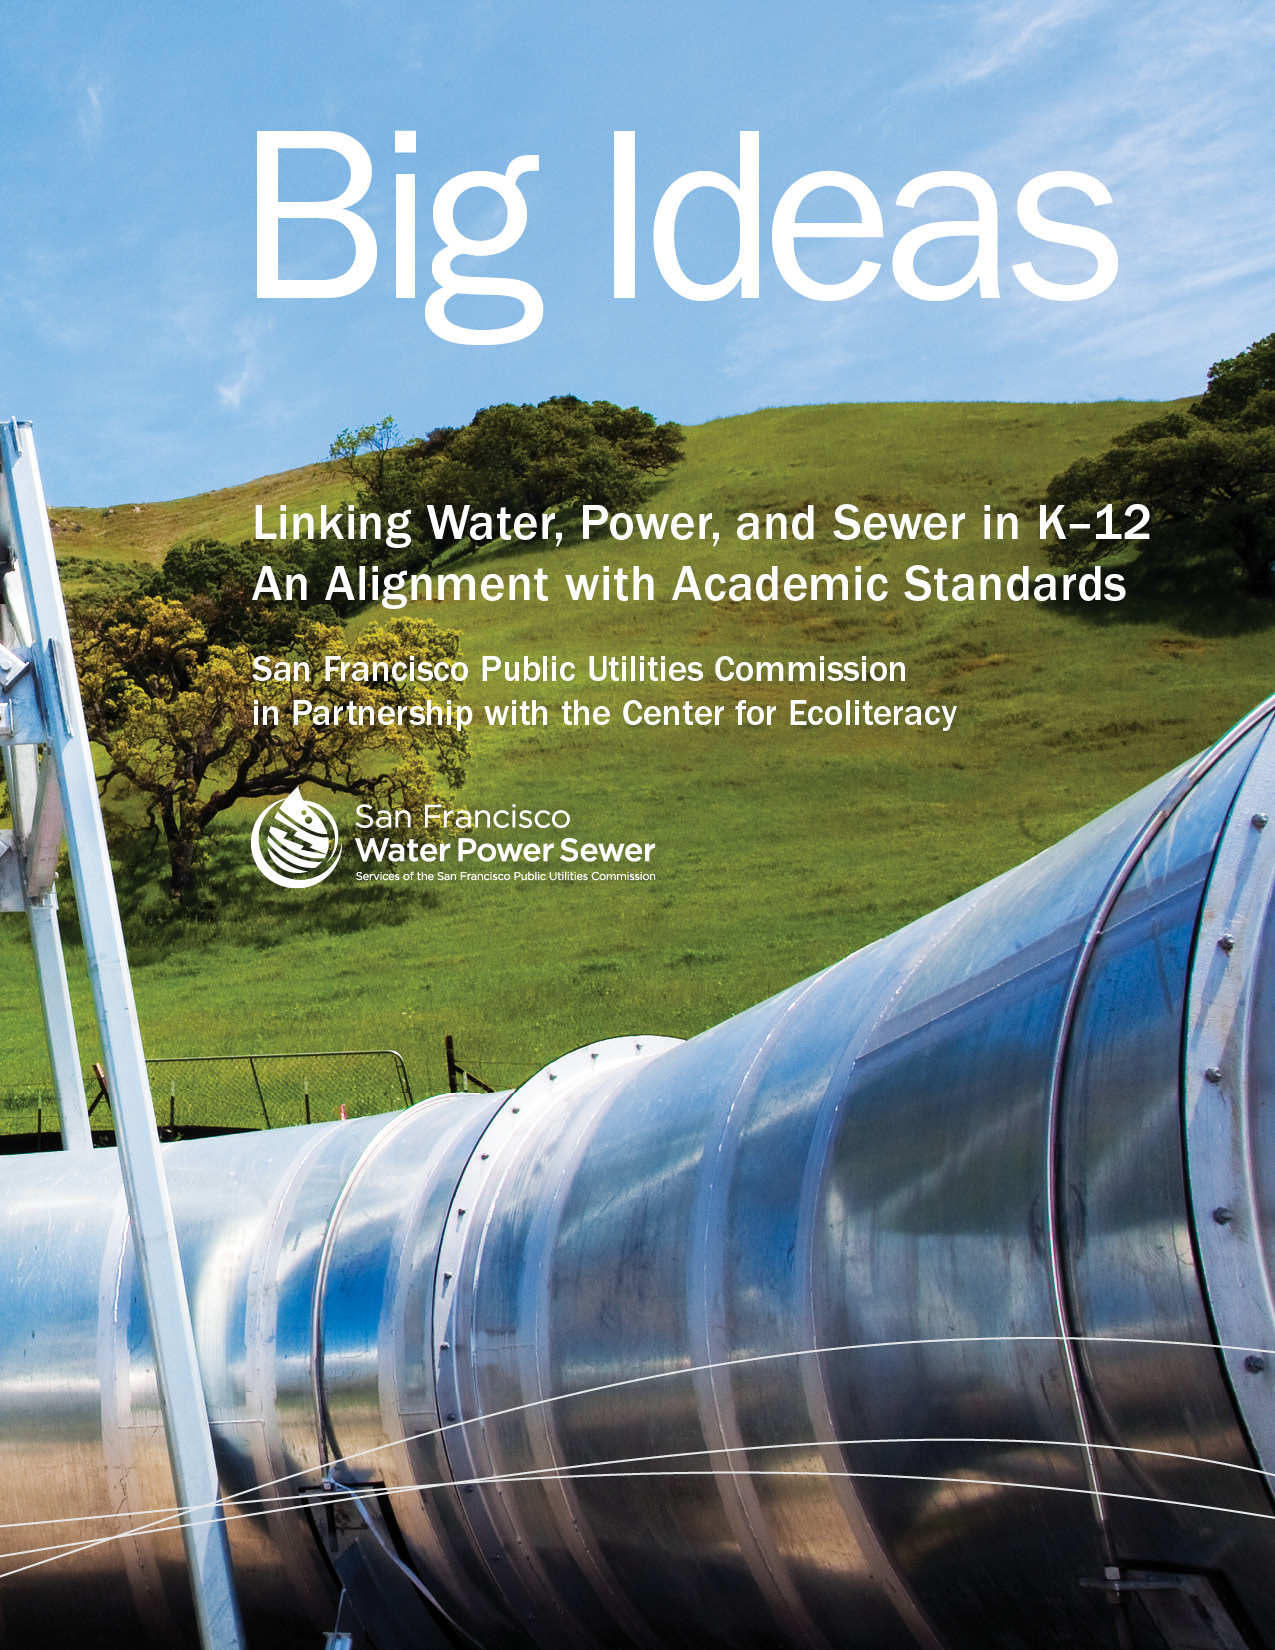 Big Ideas: Linking Water, Power, and Sewage for K-12